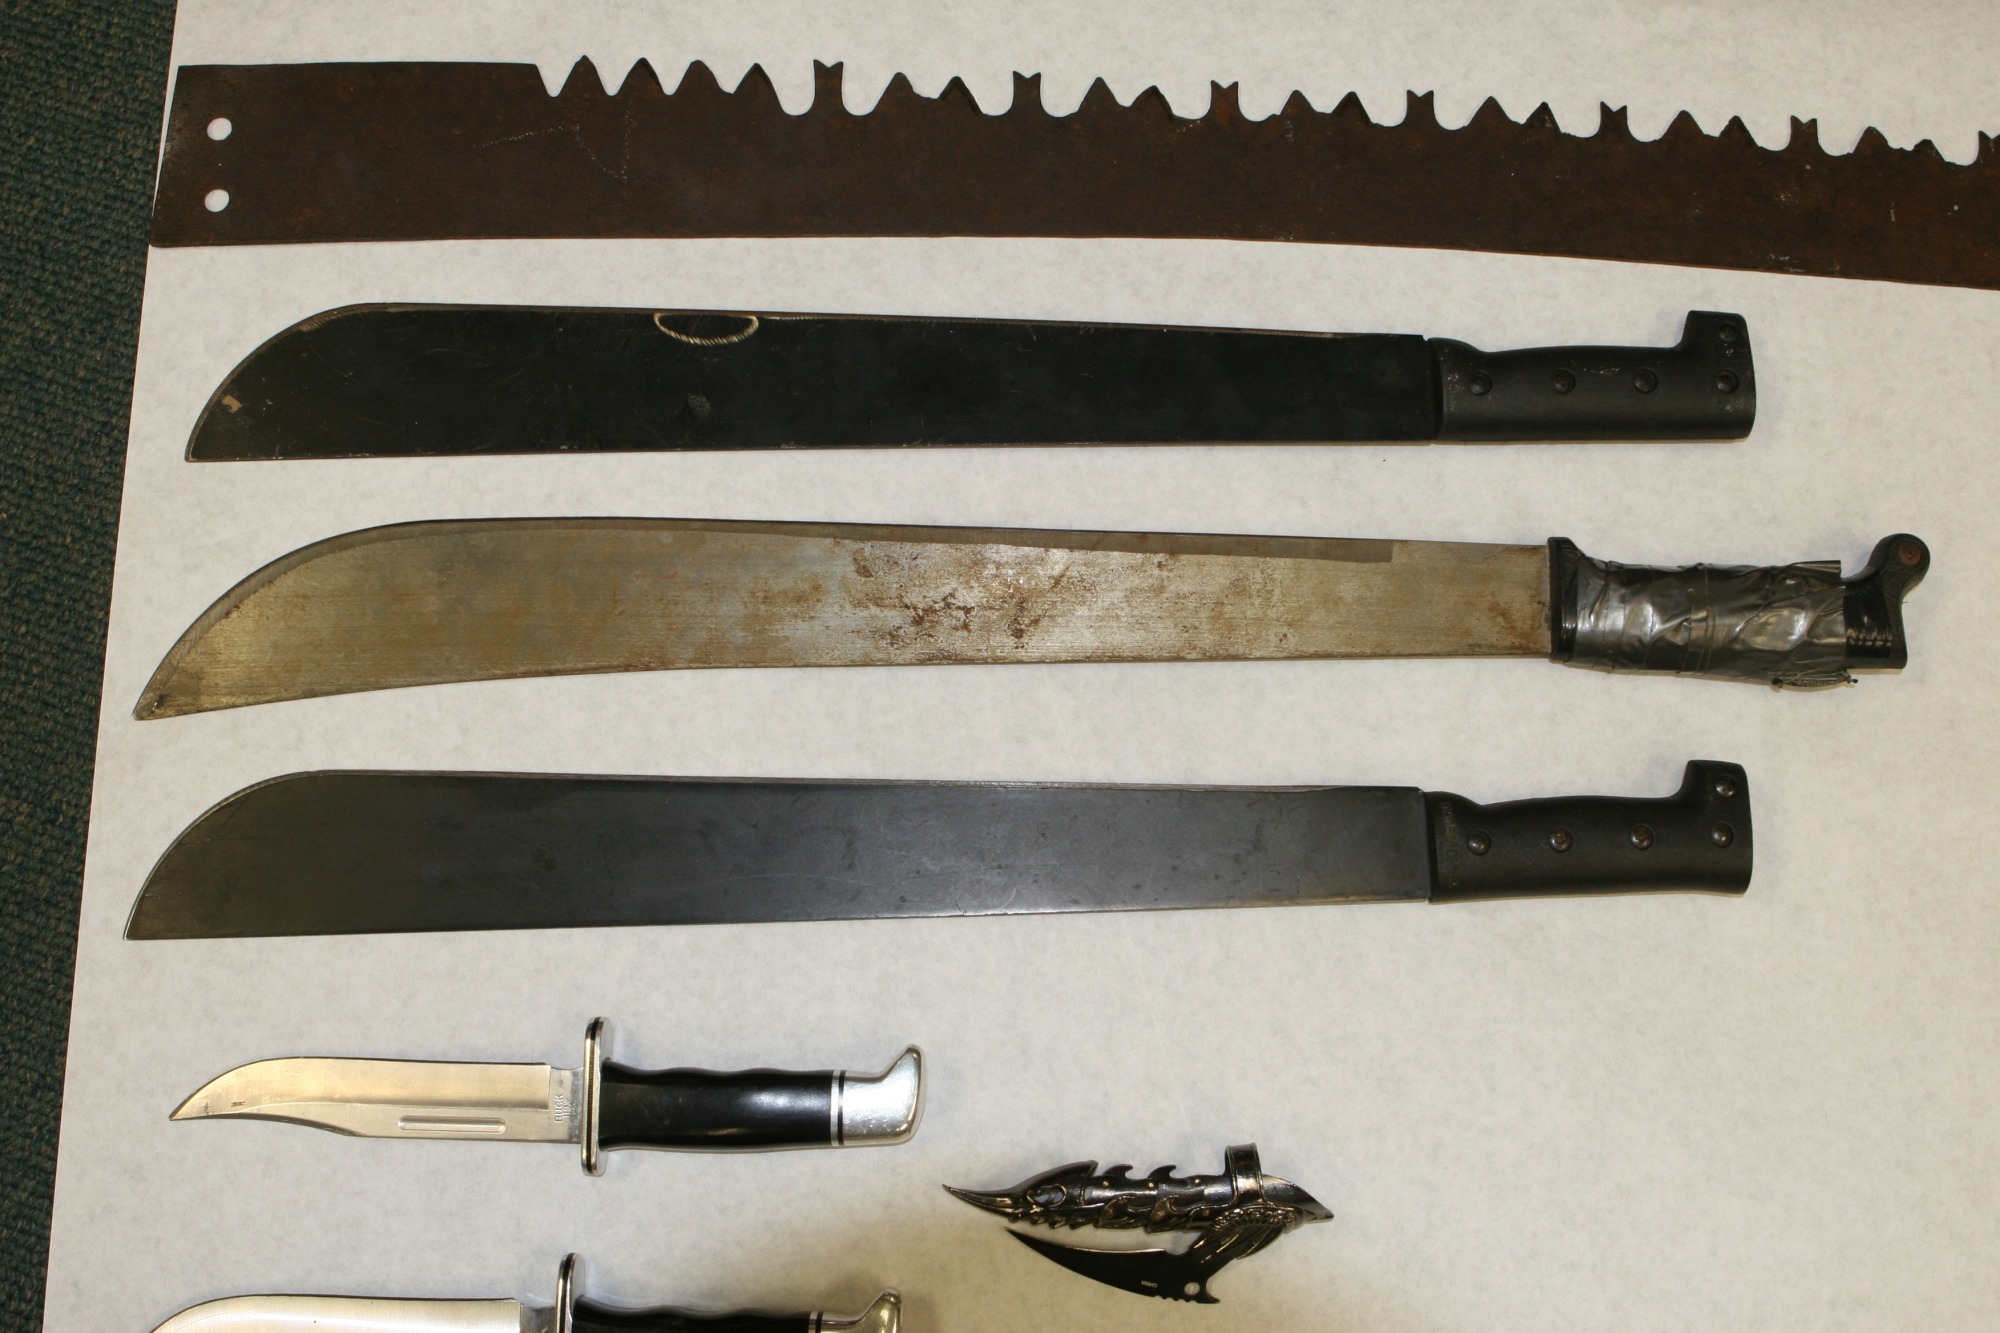 Weapons seized from Kinsey's home